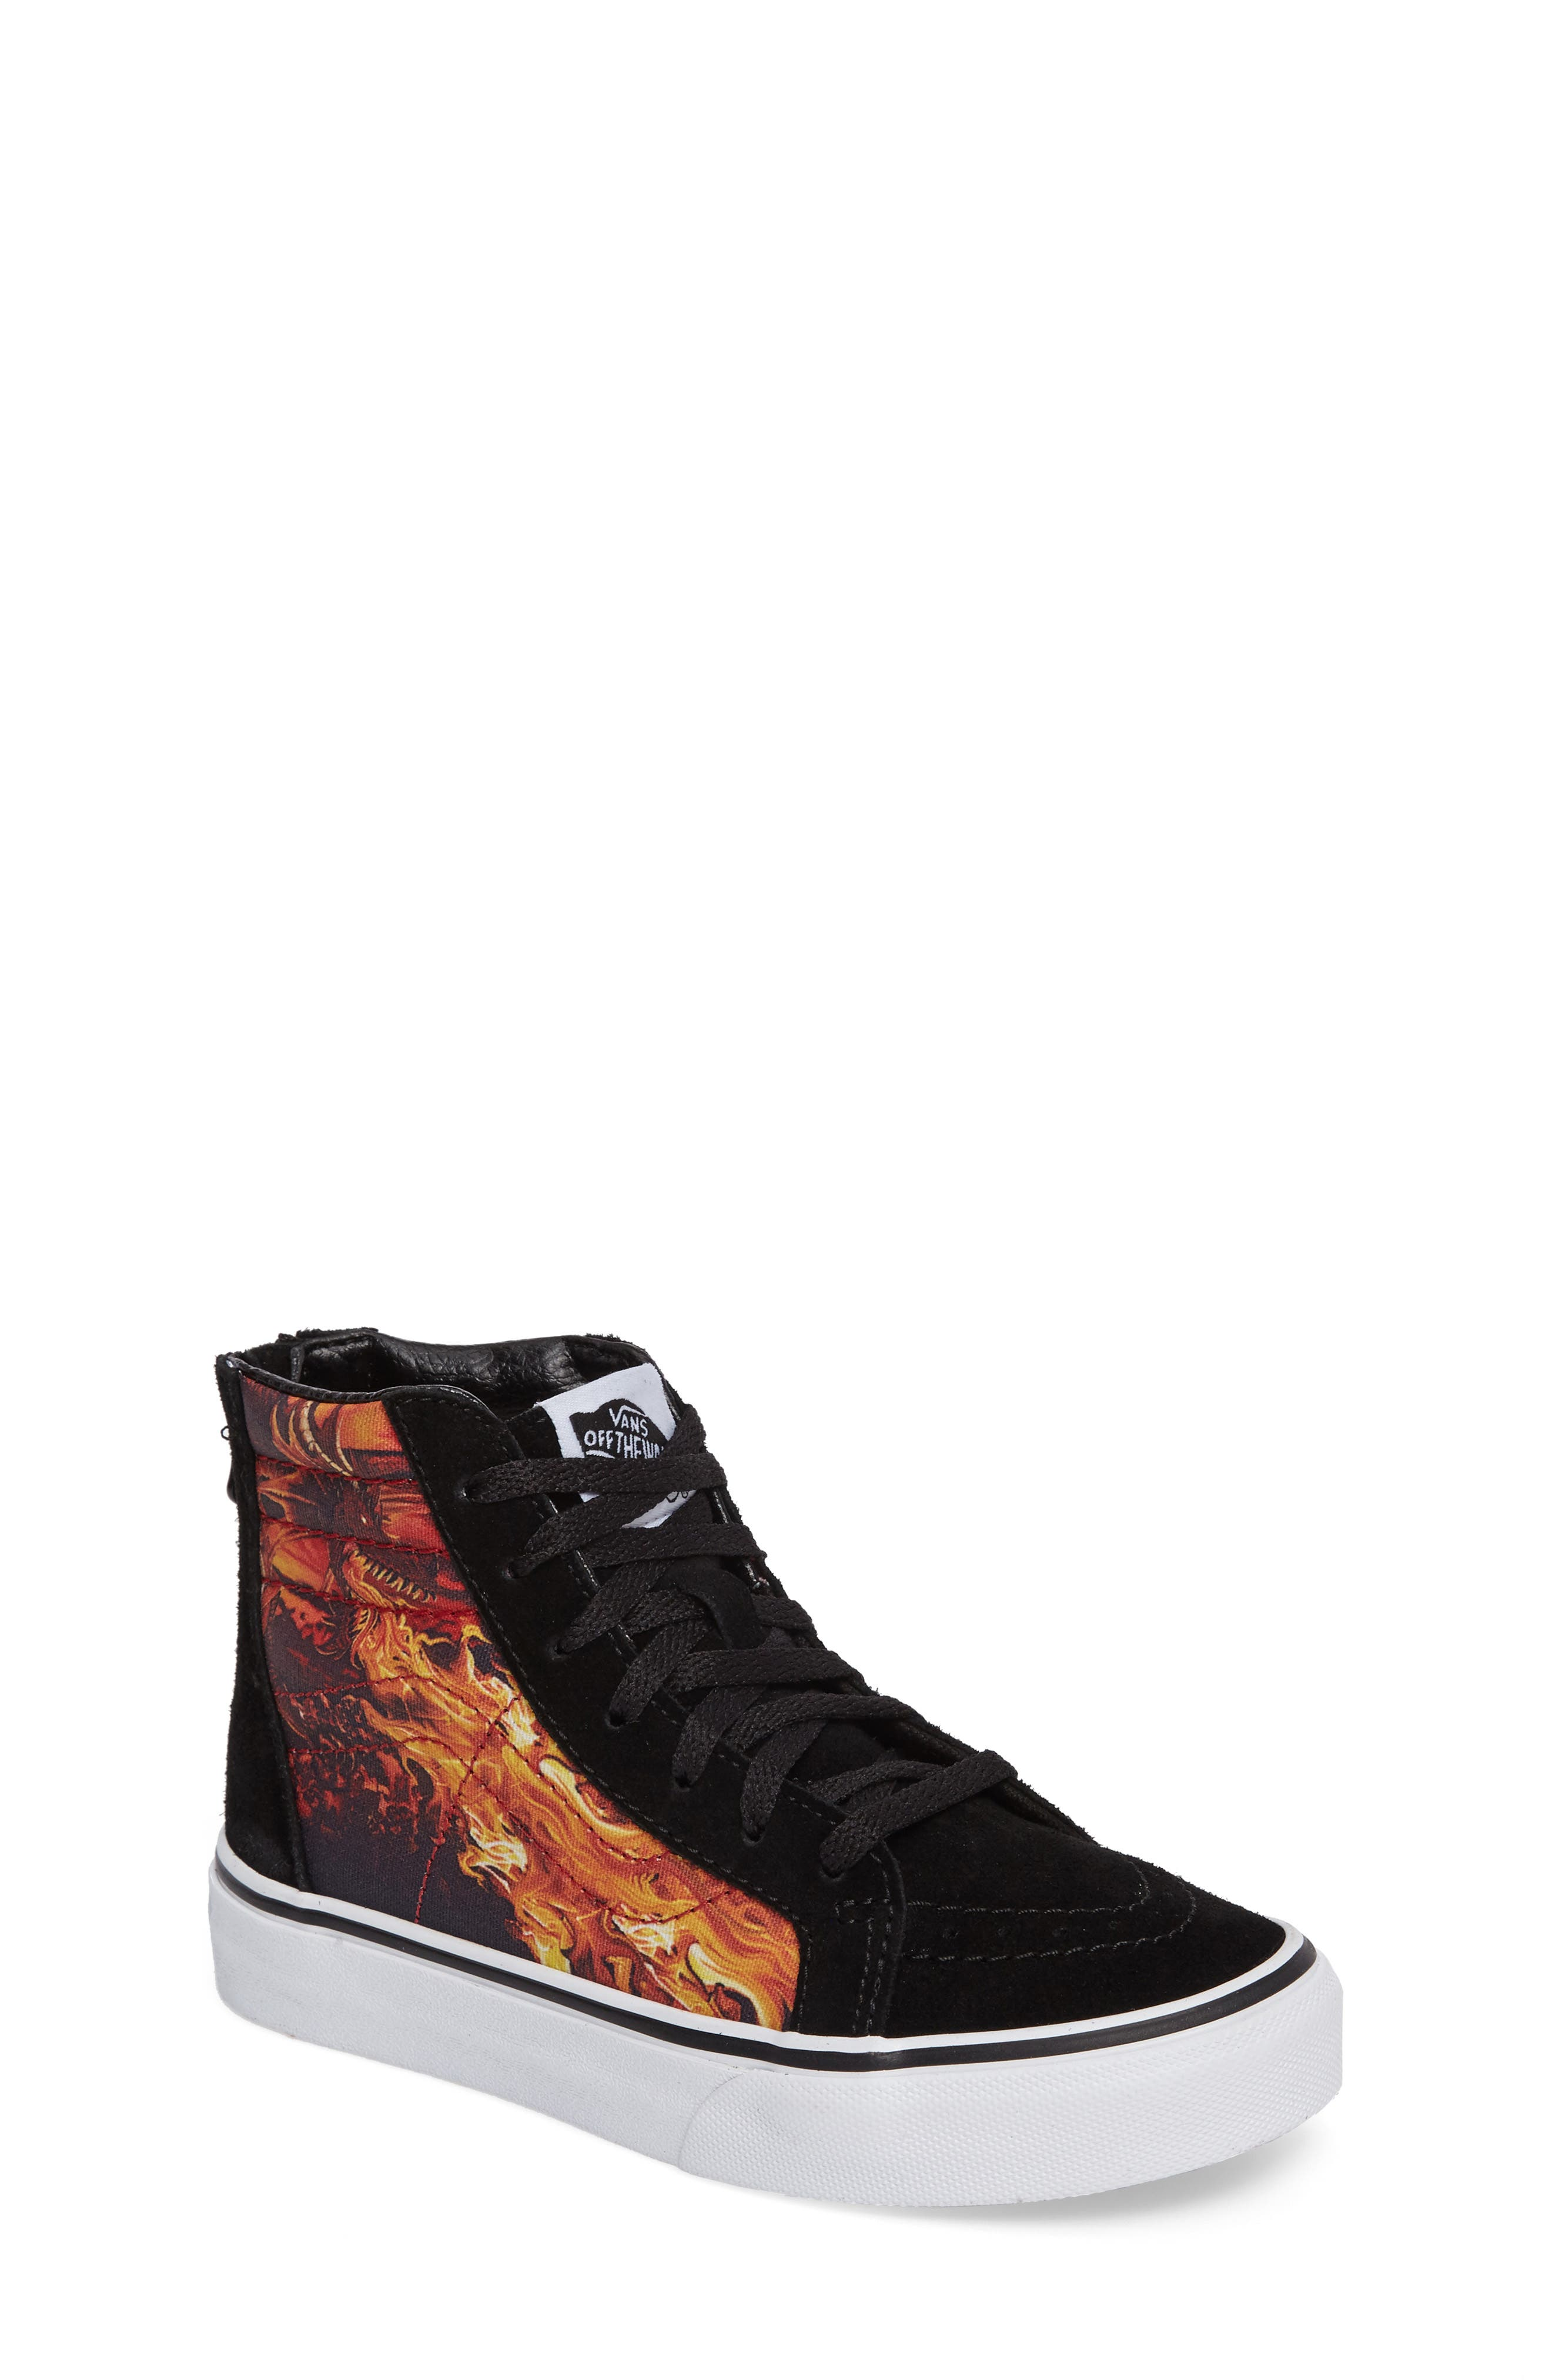 SK8-Hi Dragon Zip Sneaker,                             Main thumbnail 1, color,